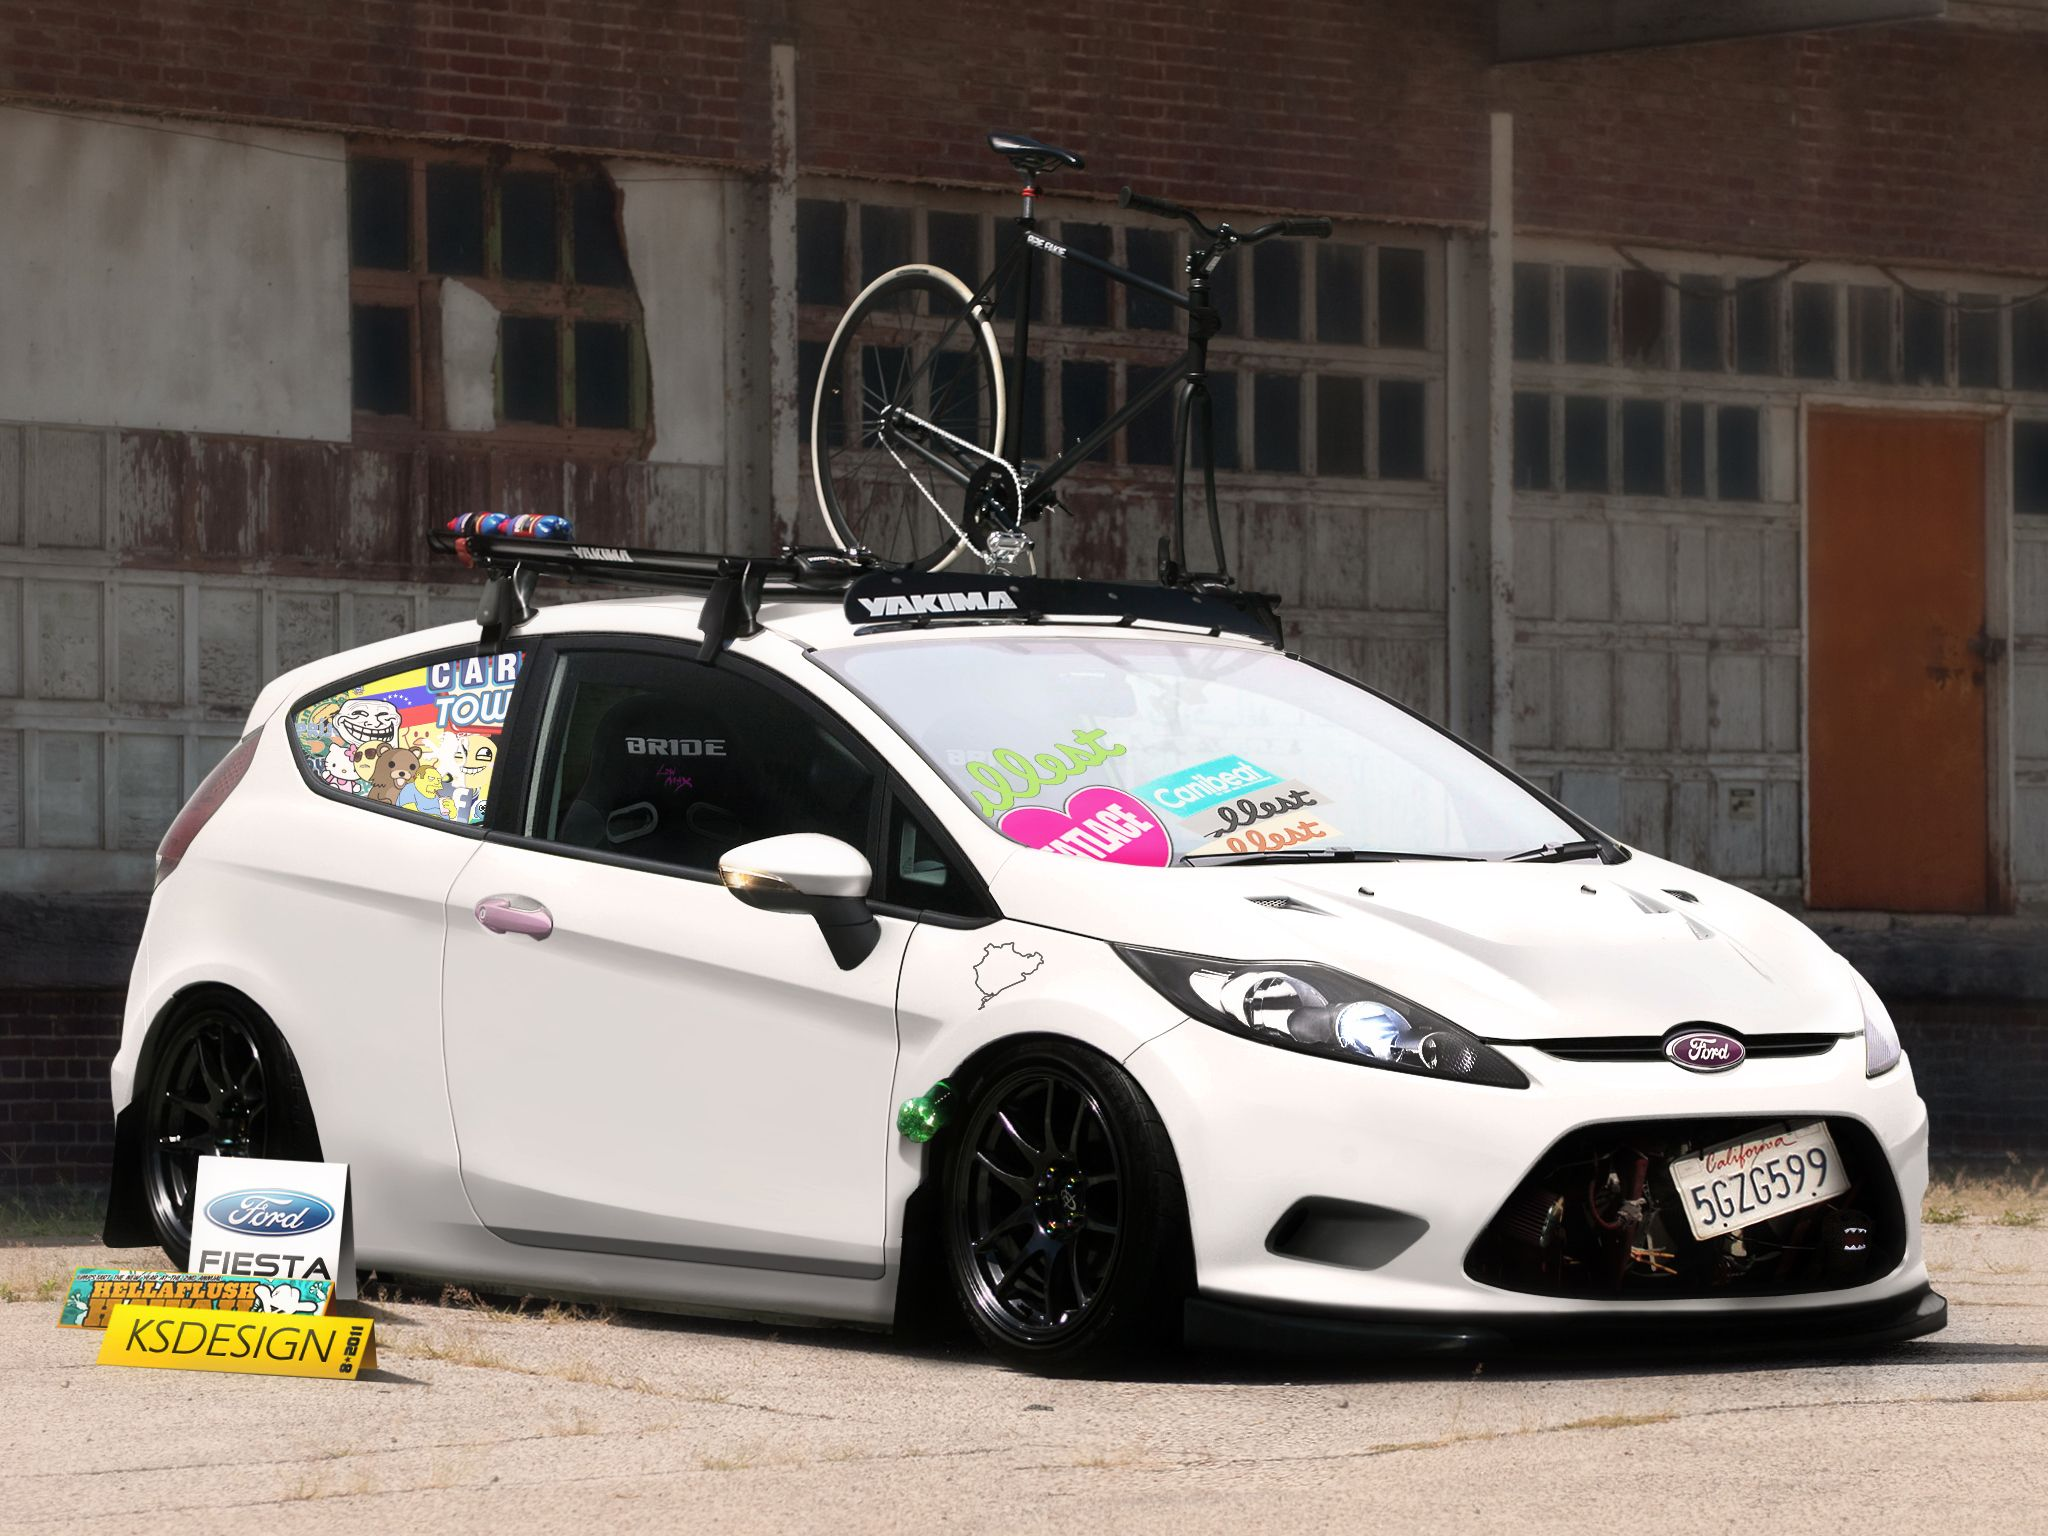 Ford Fiesta Carros Auto